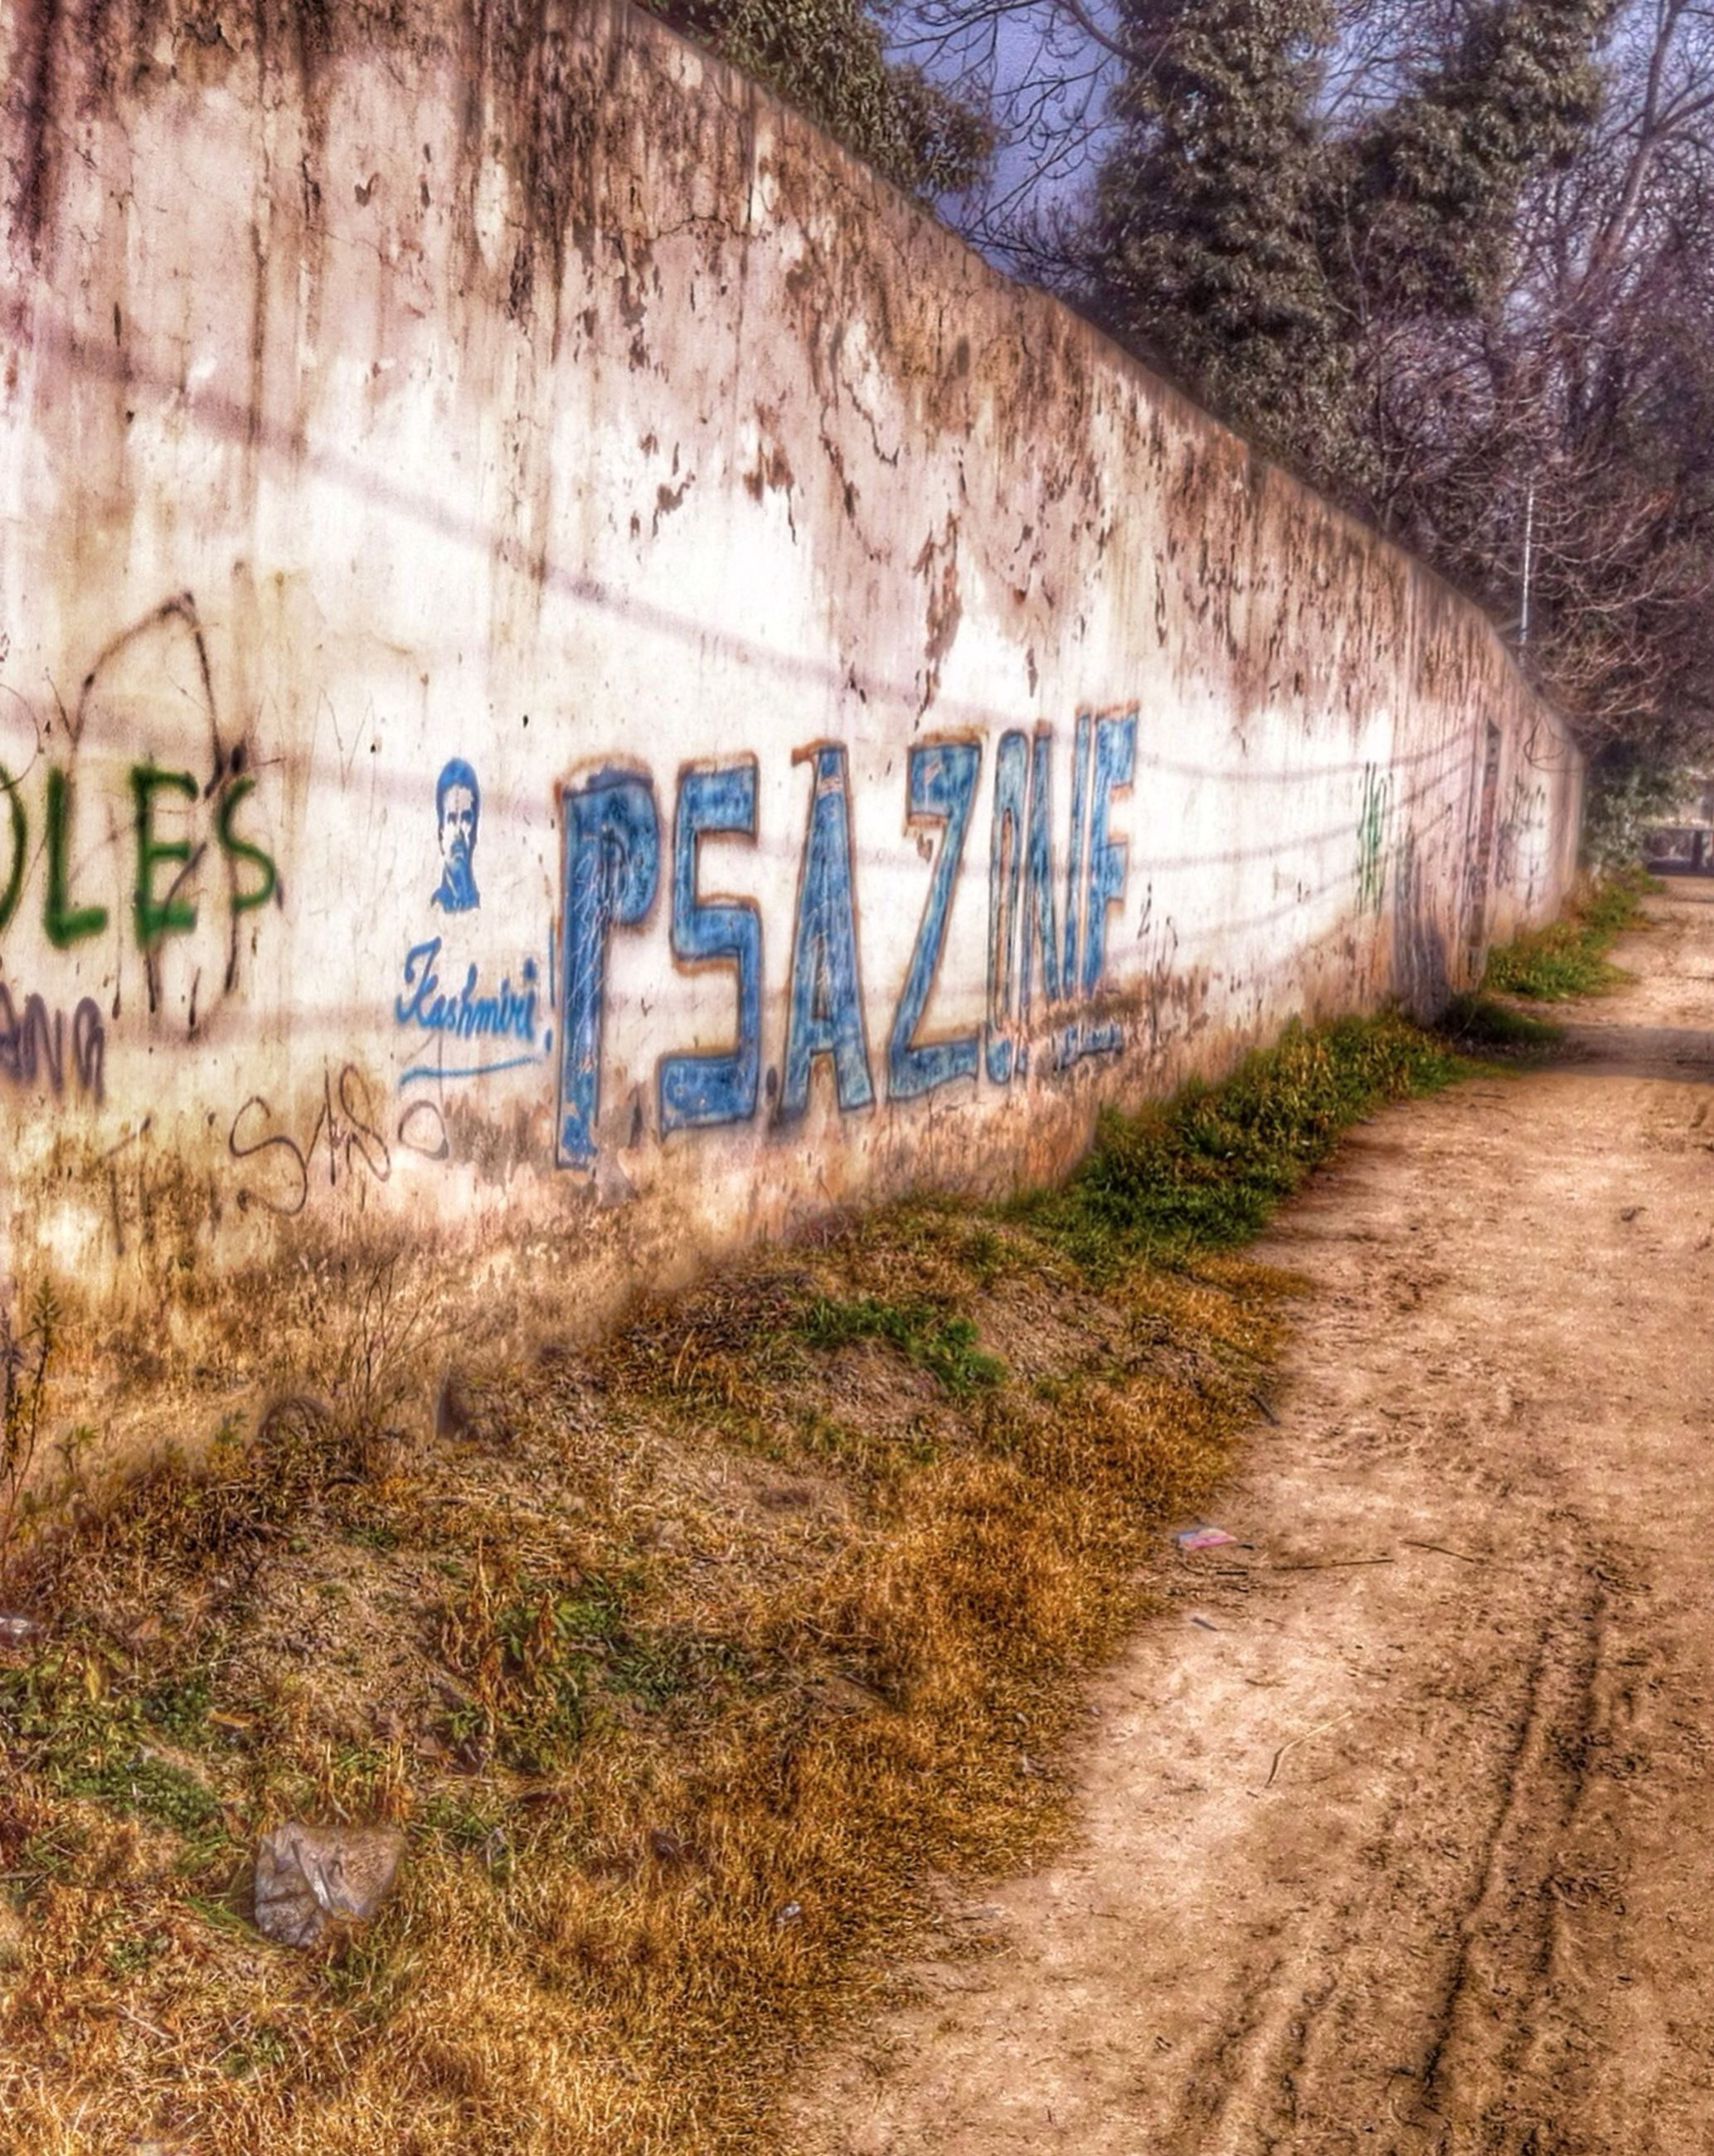 text, western script, communication, the way forward, information sign, graffiti, transportation, capital letter, road, sign, wall - building feature, day, no people, guidance, outdoors, information, non-western script, plant, diminishing perspective, grass